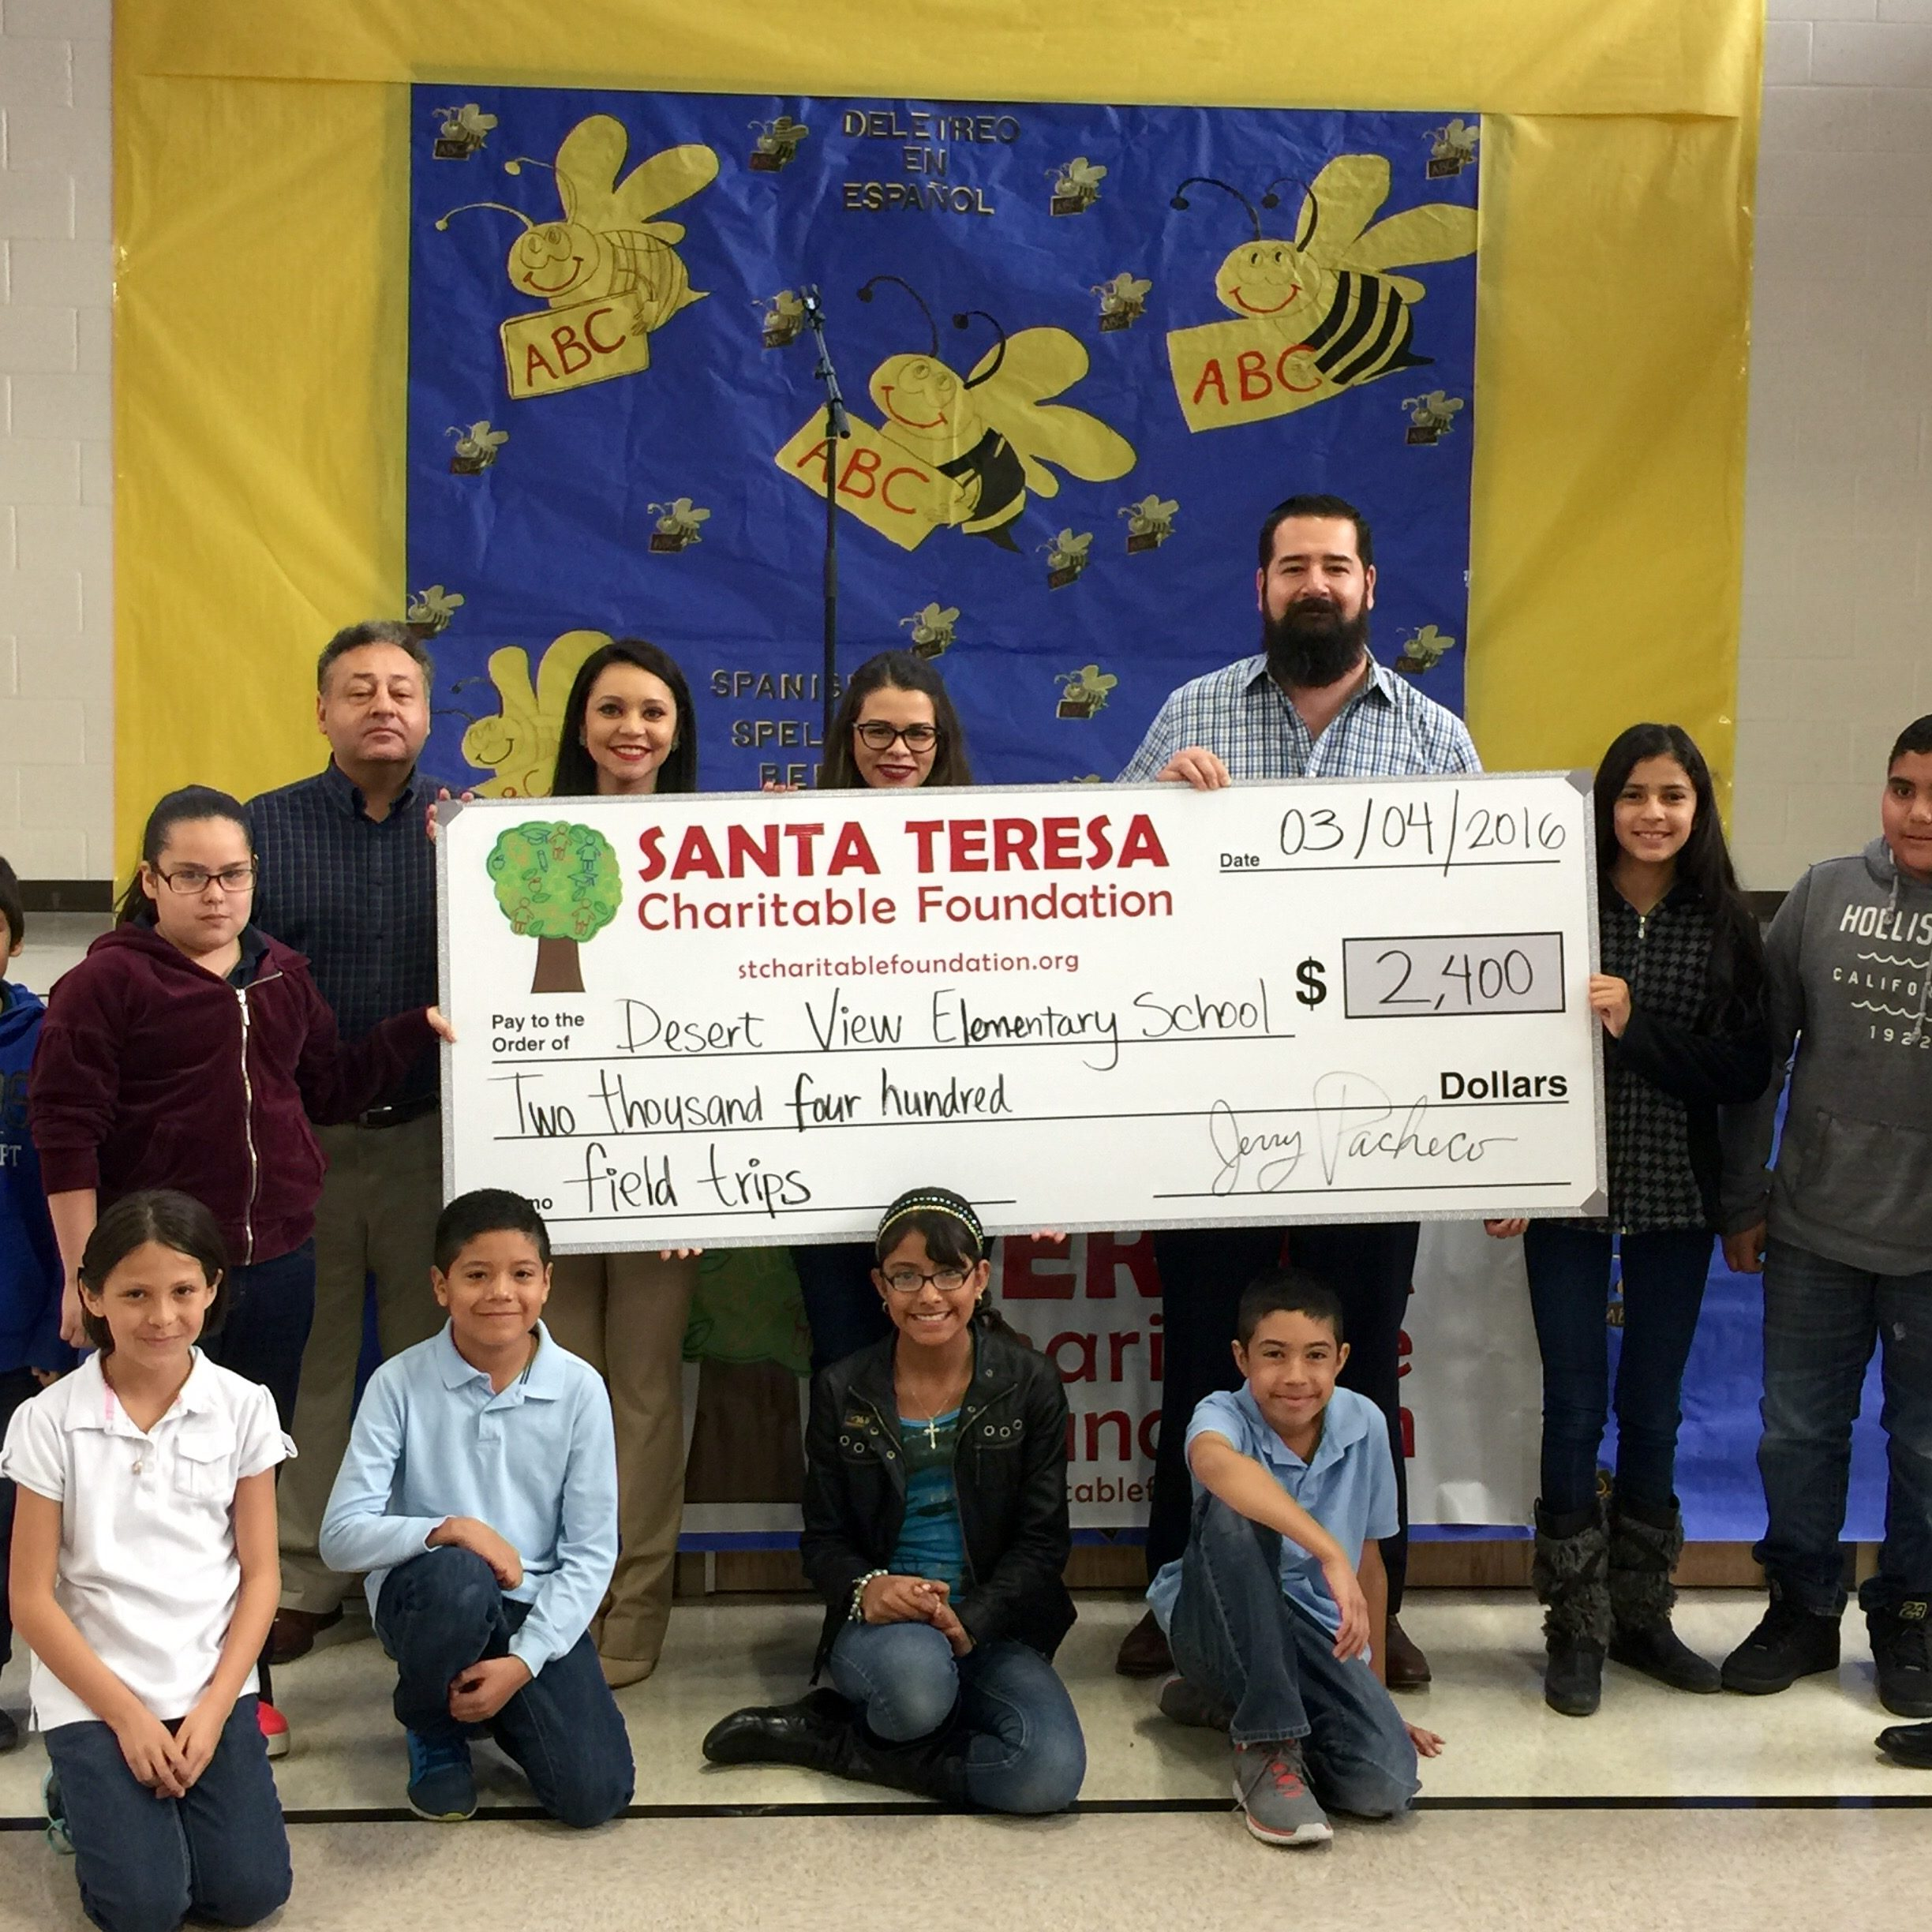 Jerry Pacheco, Adriana Castillo, Ilse Arreola and Joshua Orozco of the STCF present a check to Desert View Elementary School Principal Jorge Araujo and students.